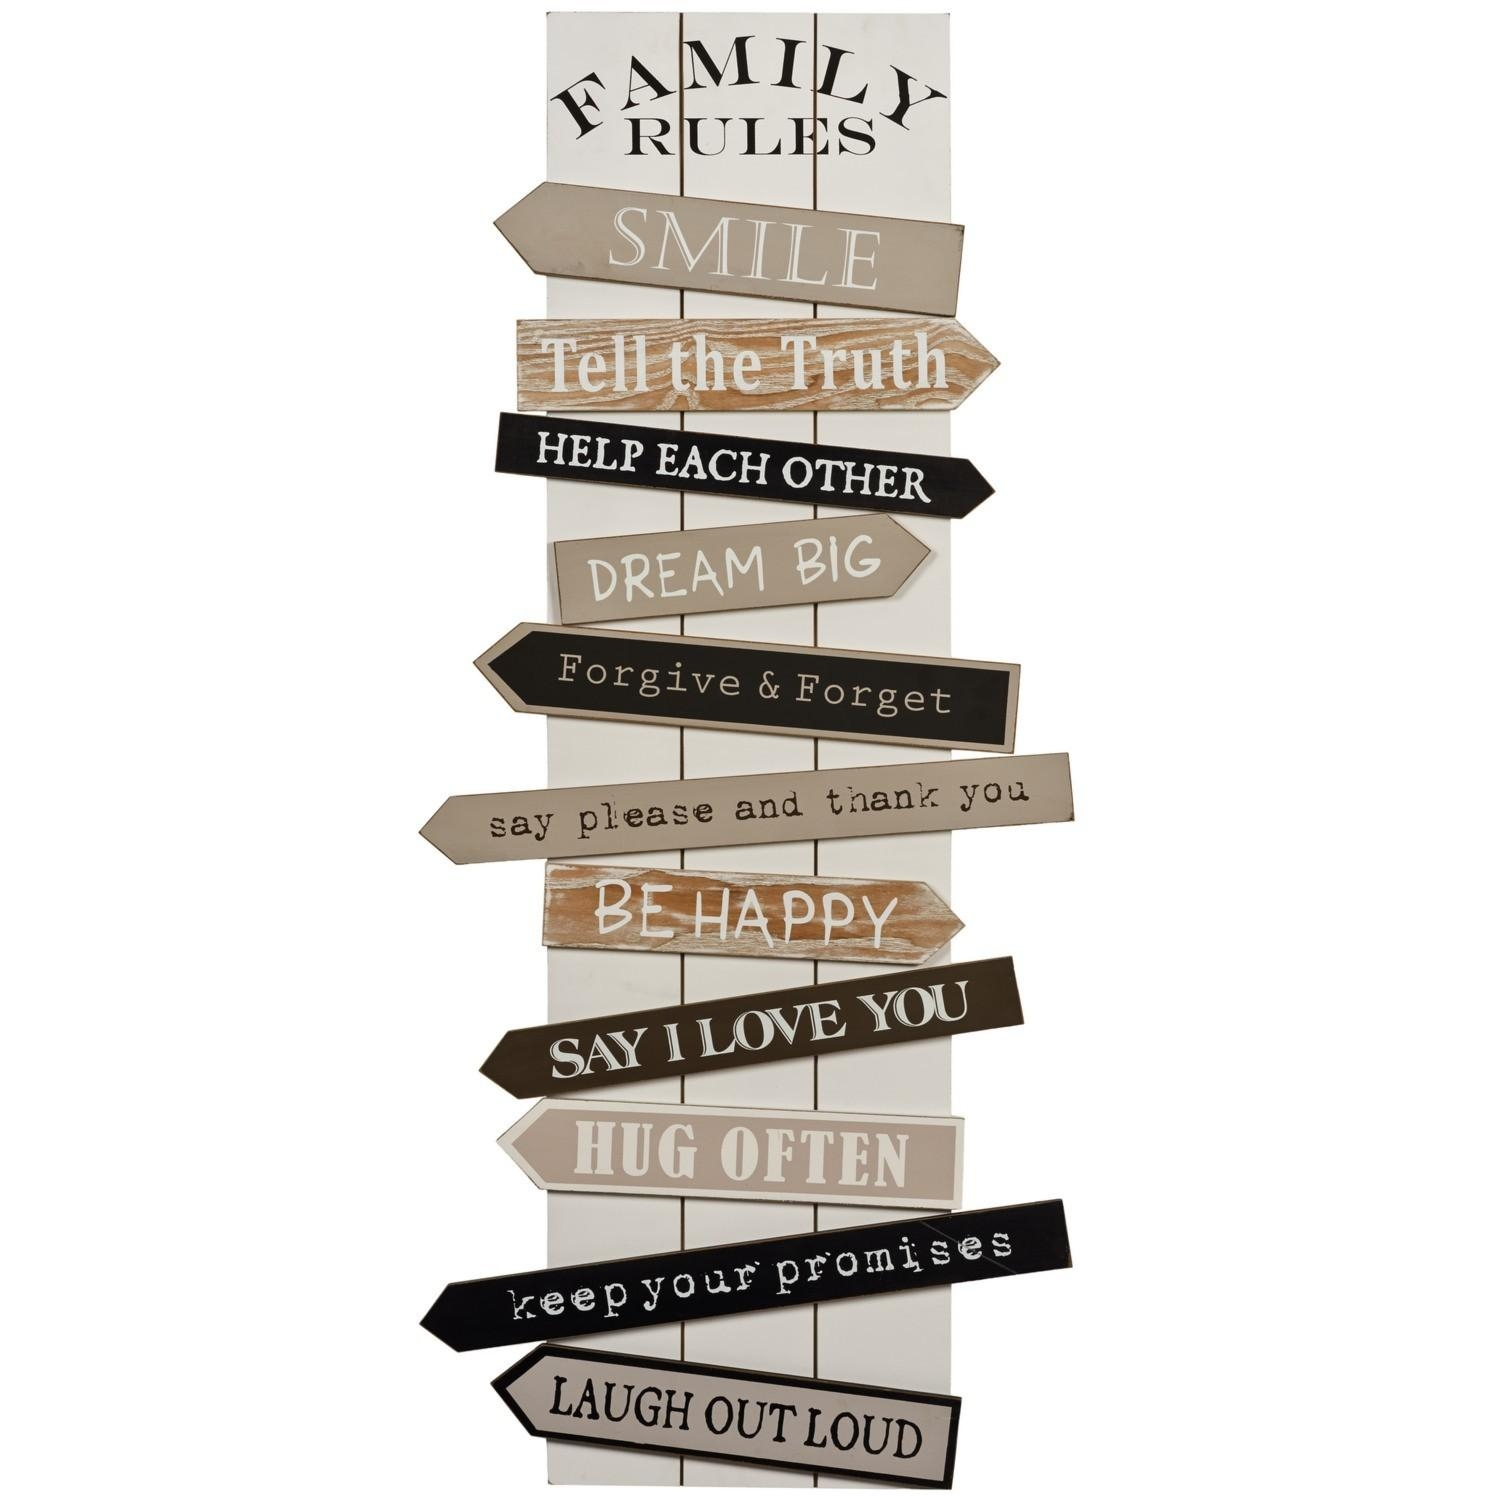 Wall Art Designs: Family Rules Wall Art Vintage Wall Art Wooden Pertaining To Wooden Word Wall Art (View 15 of 20)